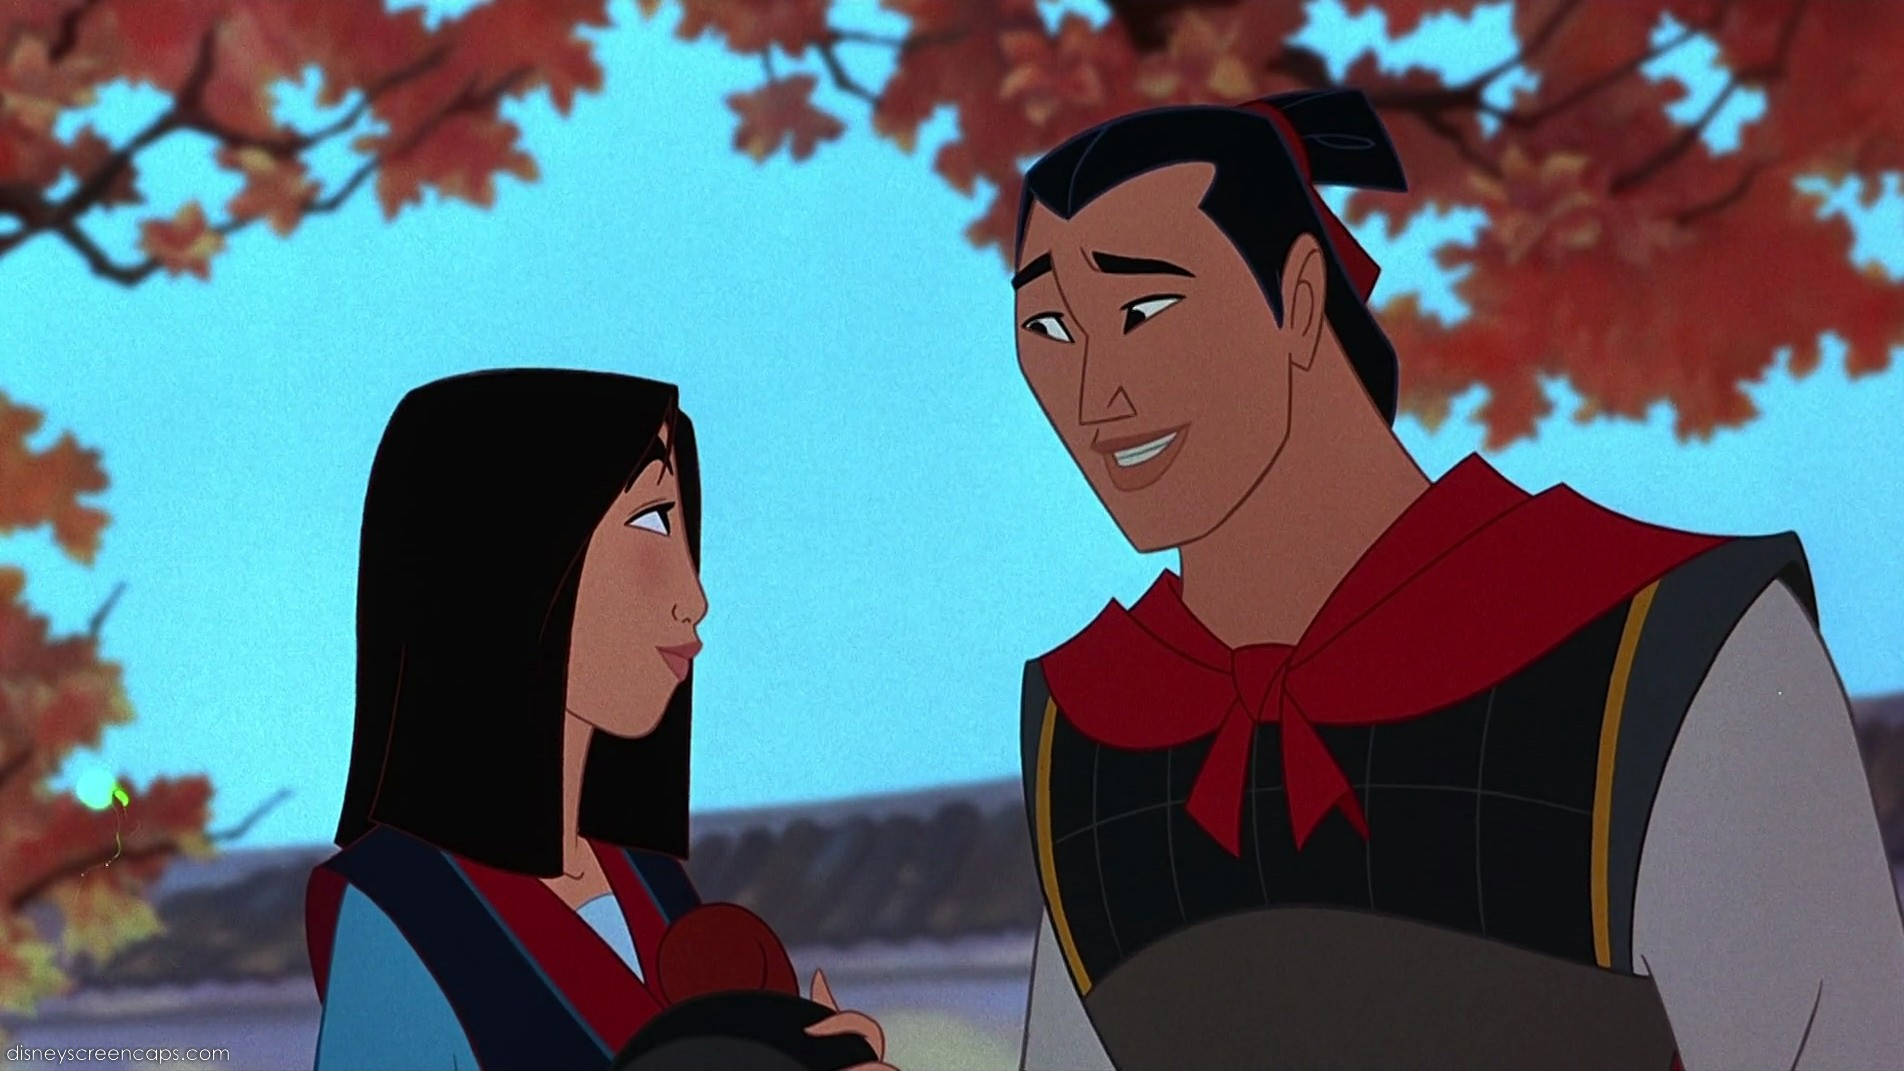 Uncategorized Mulan And Shang image shang and mulan jpg disney wiki fandom powered by wikia jpg